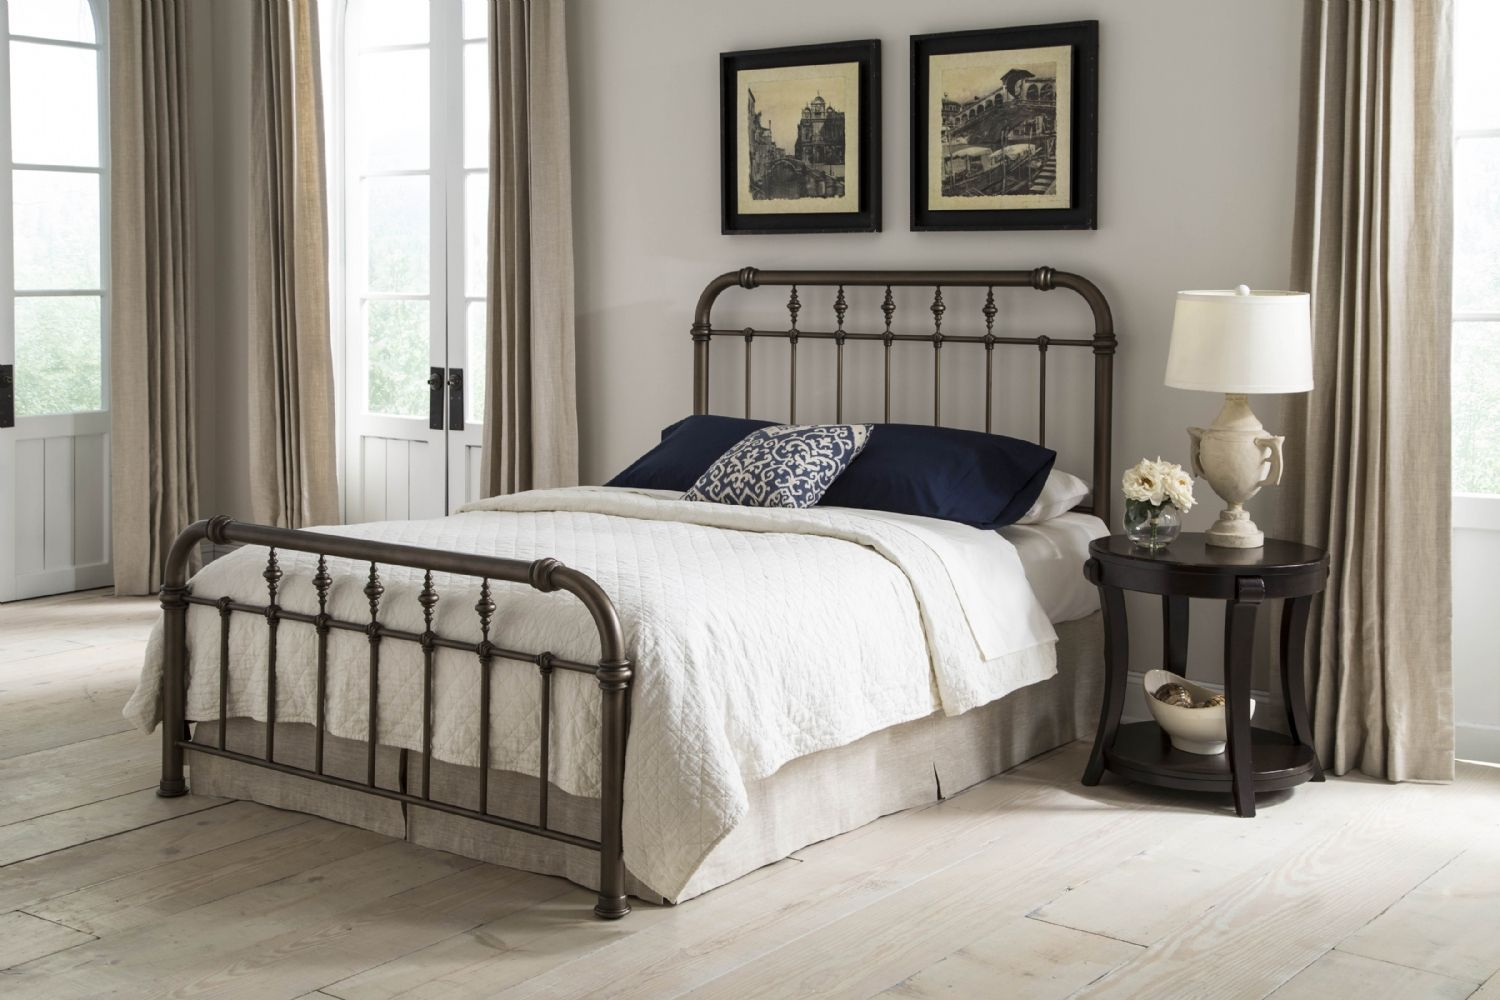 Vienna Bed Bed styling, Iron bed, California king size bed